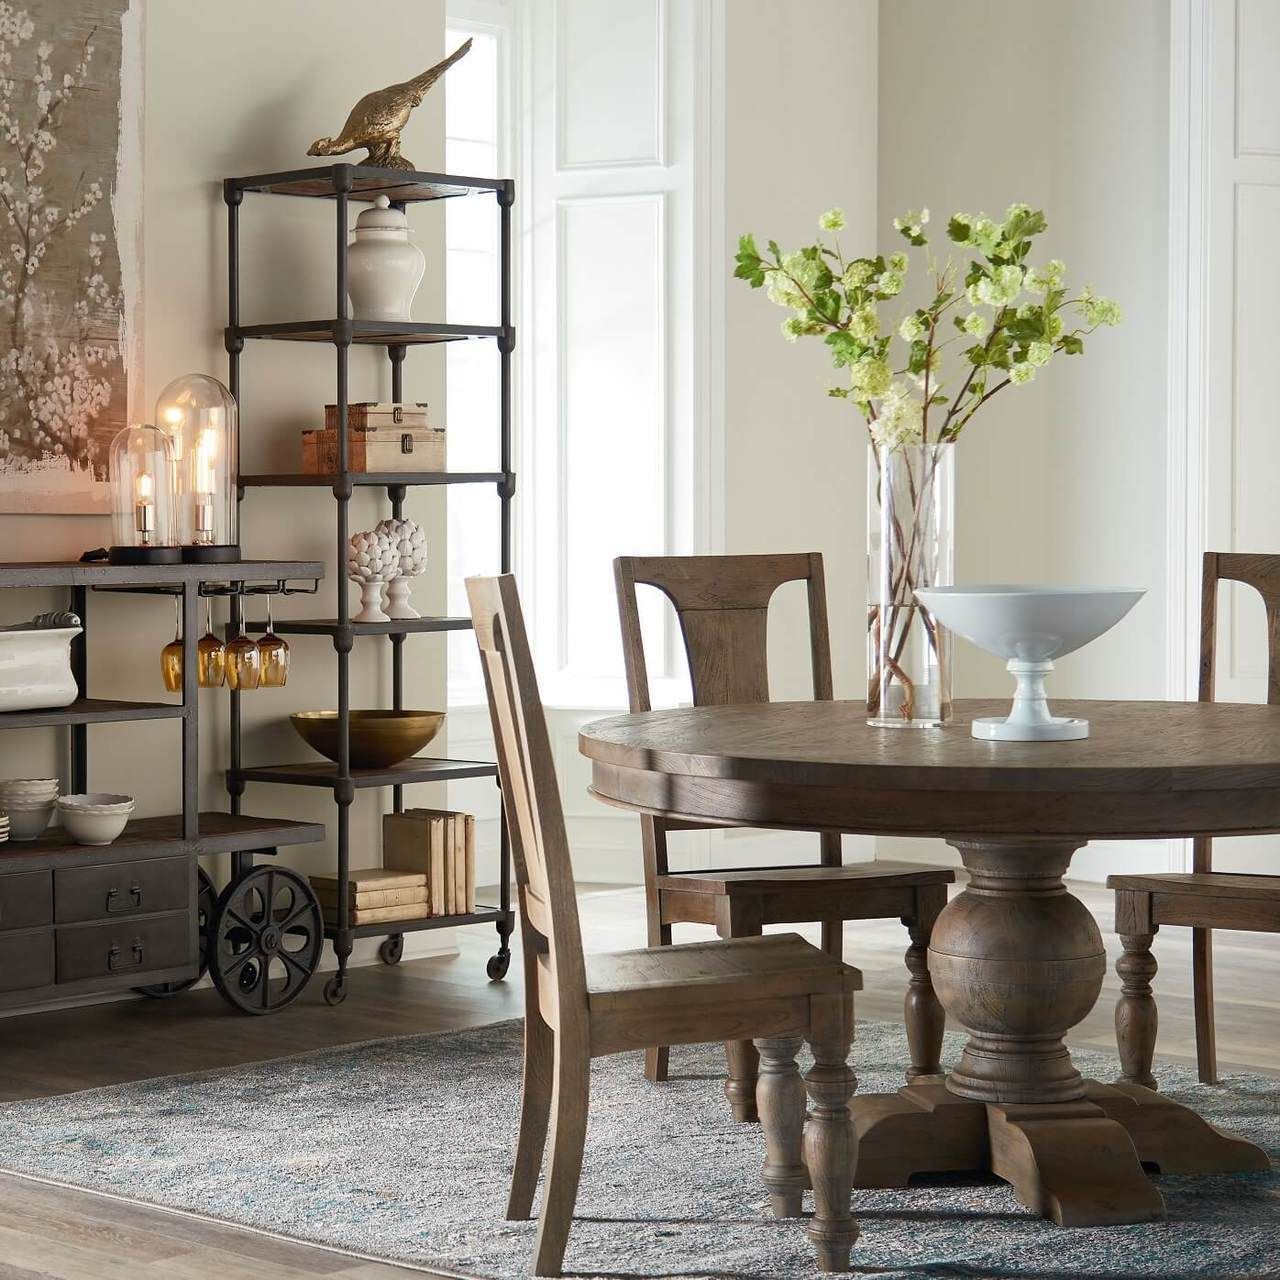 15+ 72 inch round farmhouse dining table inspiration